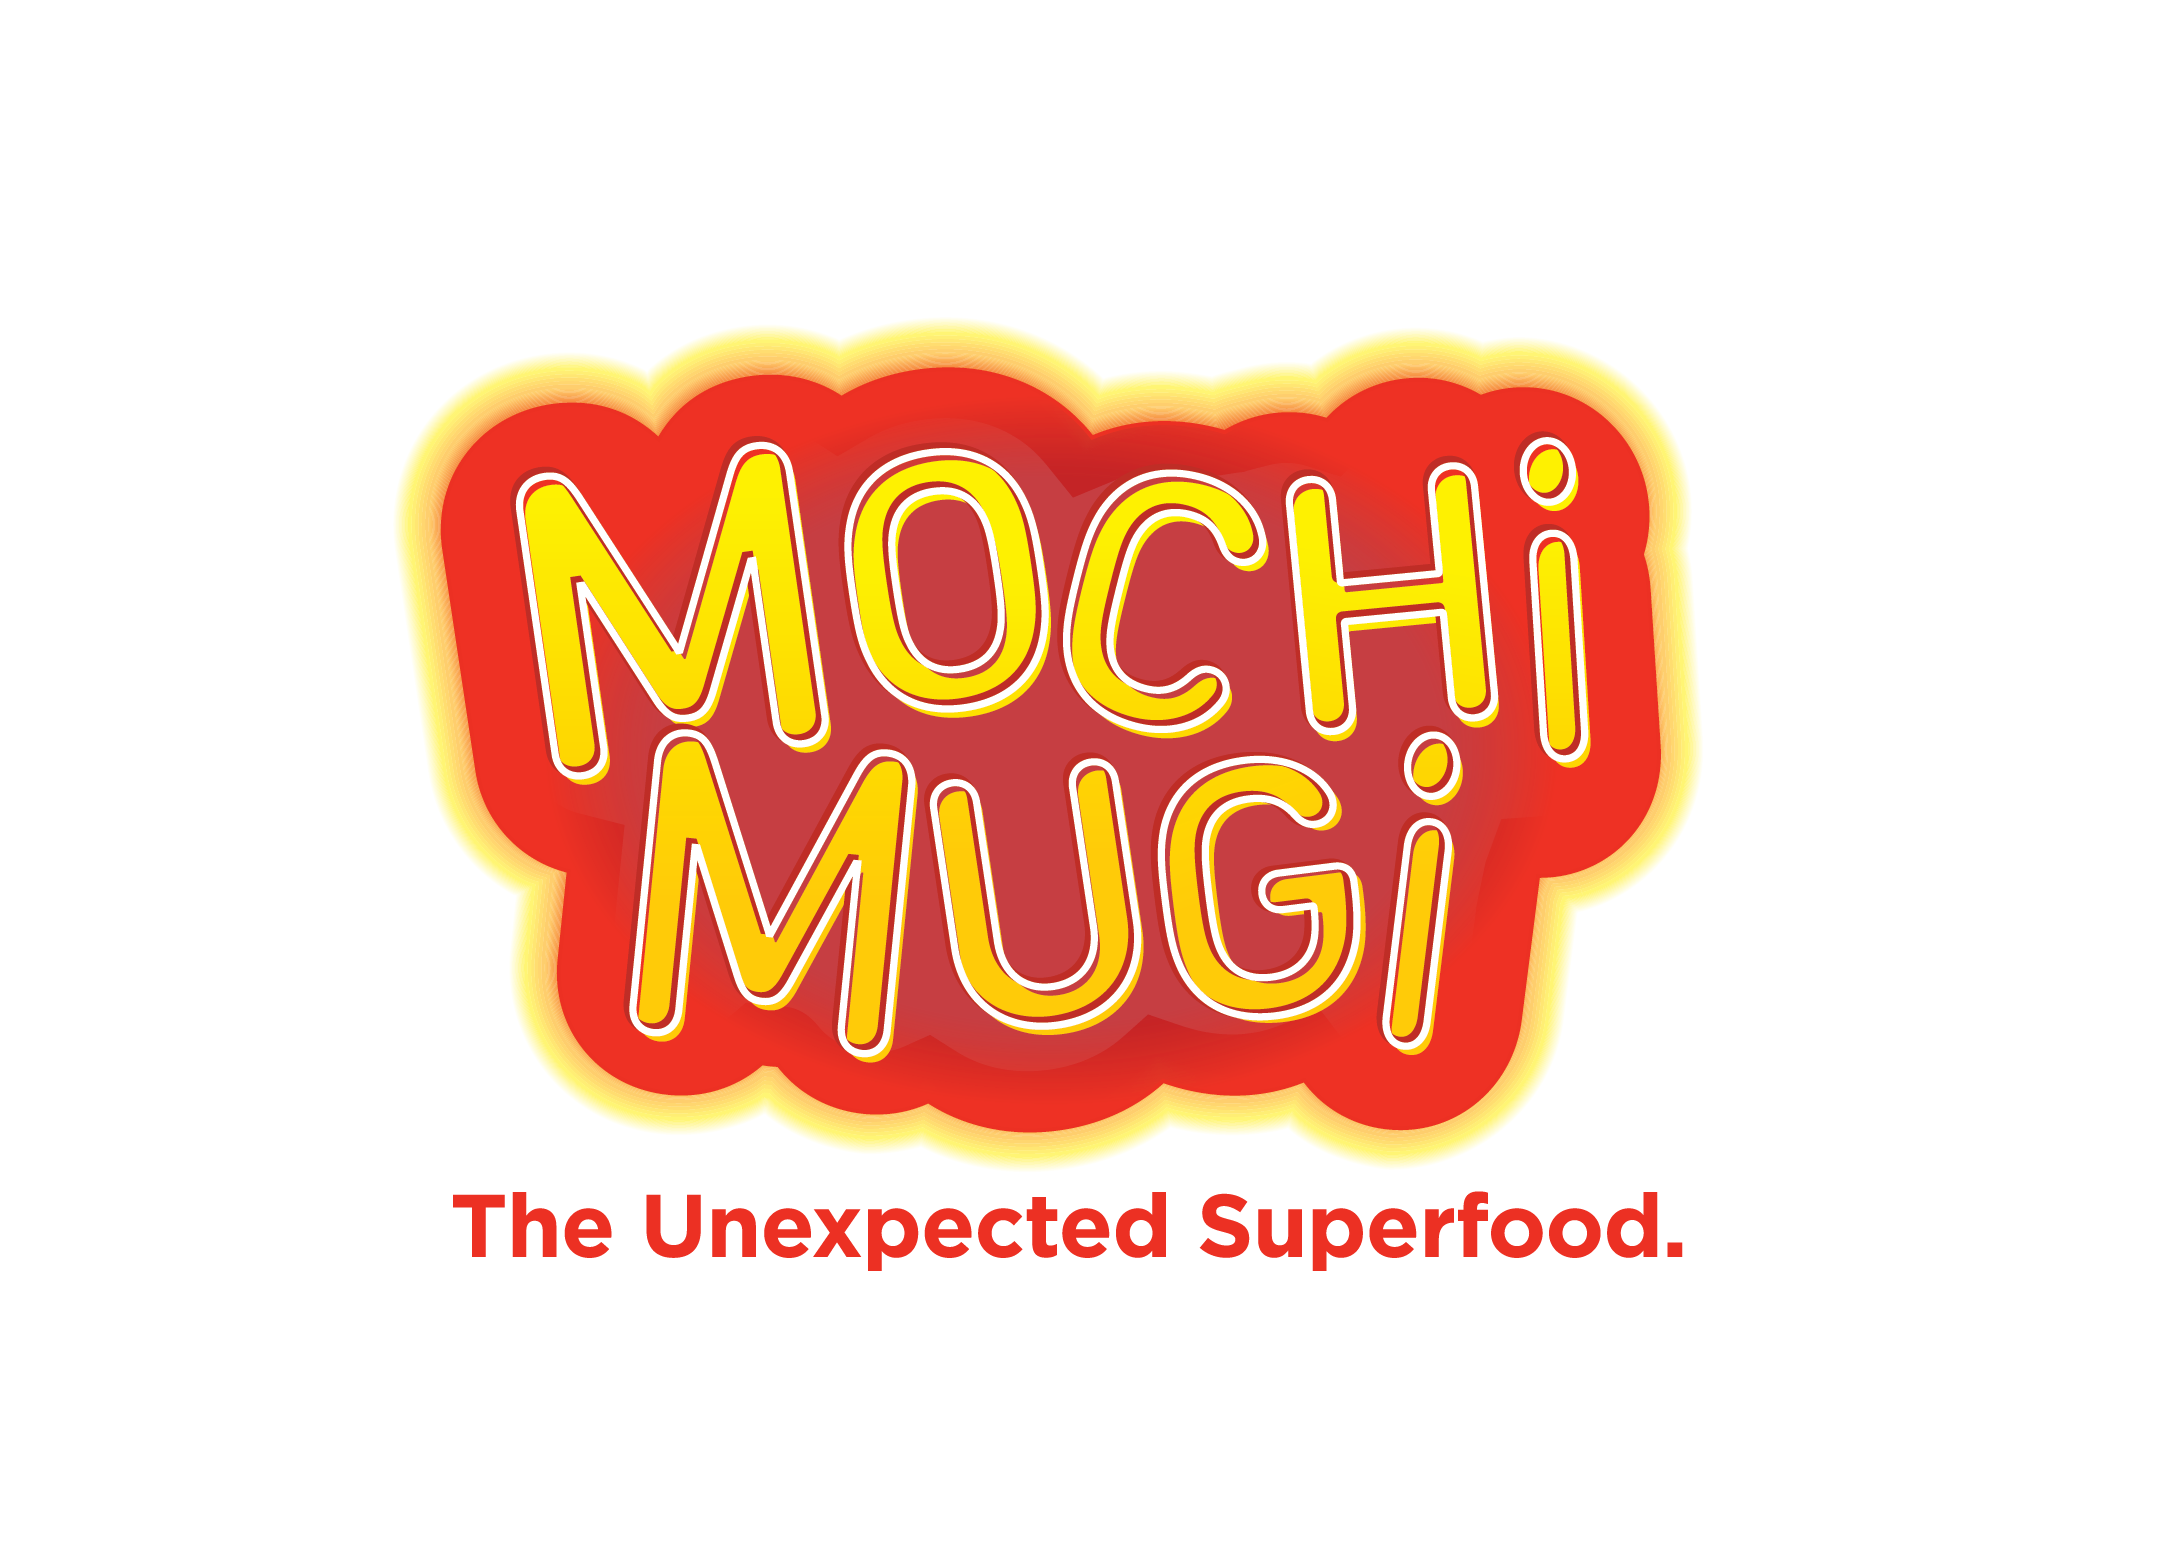 Mochi Mugi Pearl Barley will treat you right if flavor and health and versatility and simplicity matter to you...